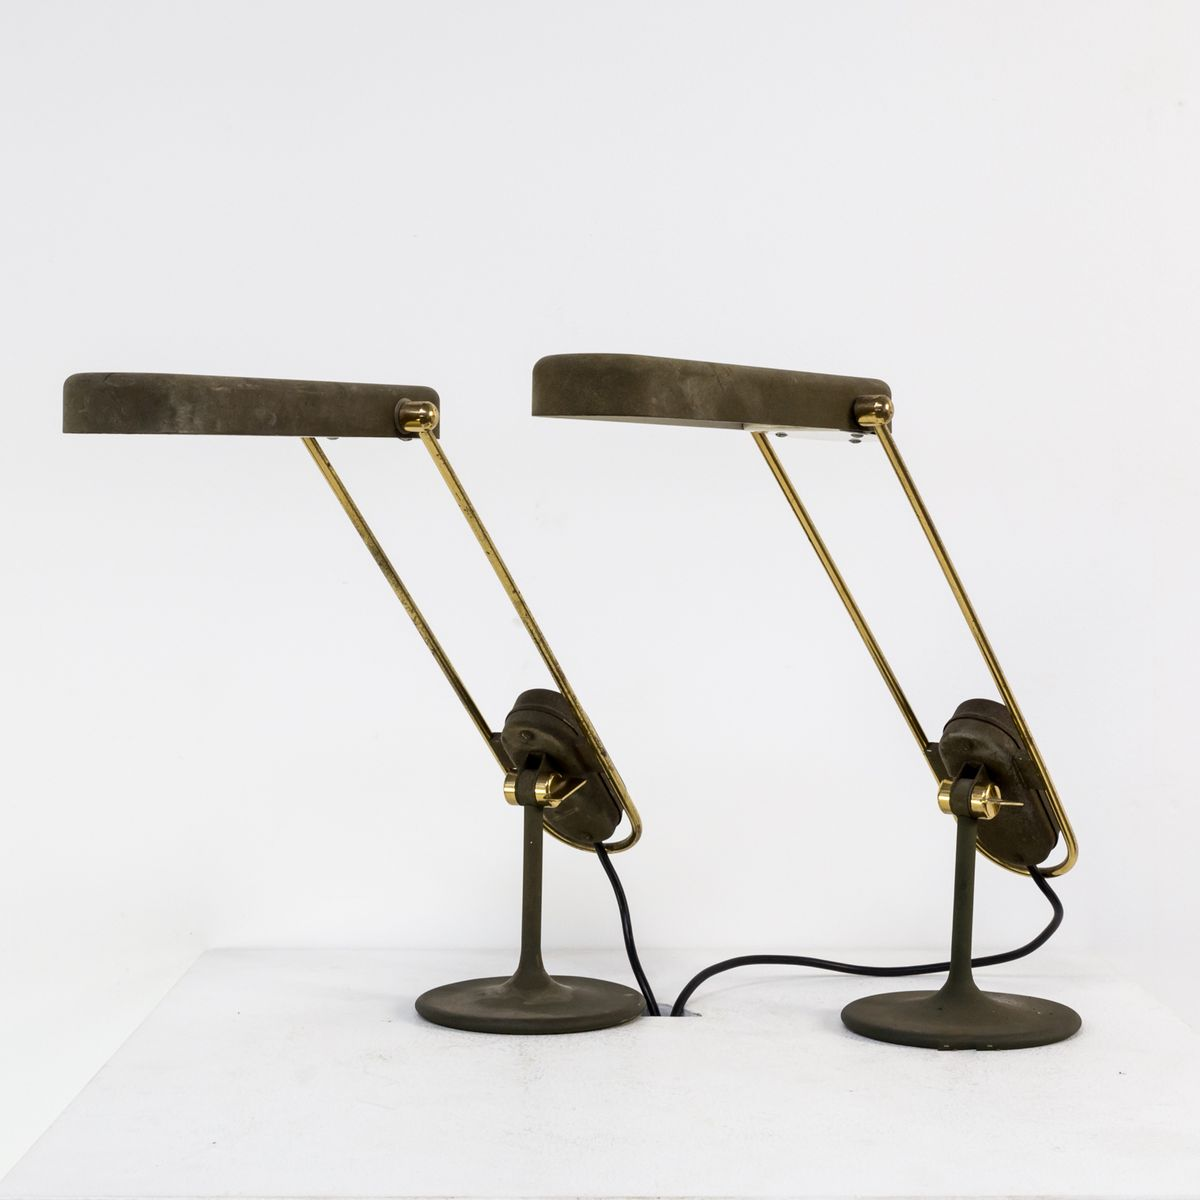 Desk Lamps From Philips 1970s Set Of 2 For Sale At Pamono